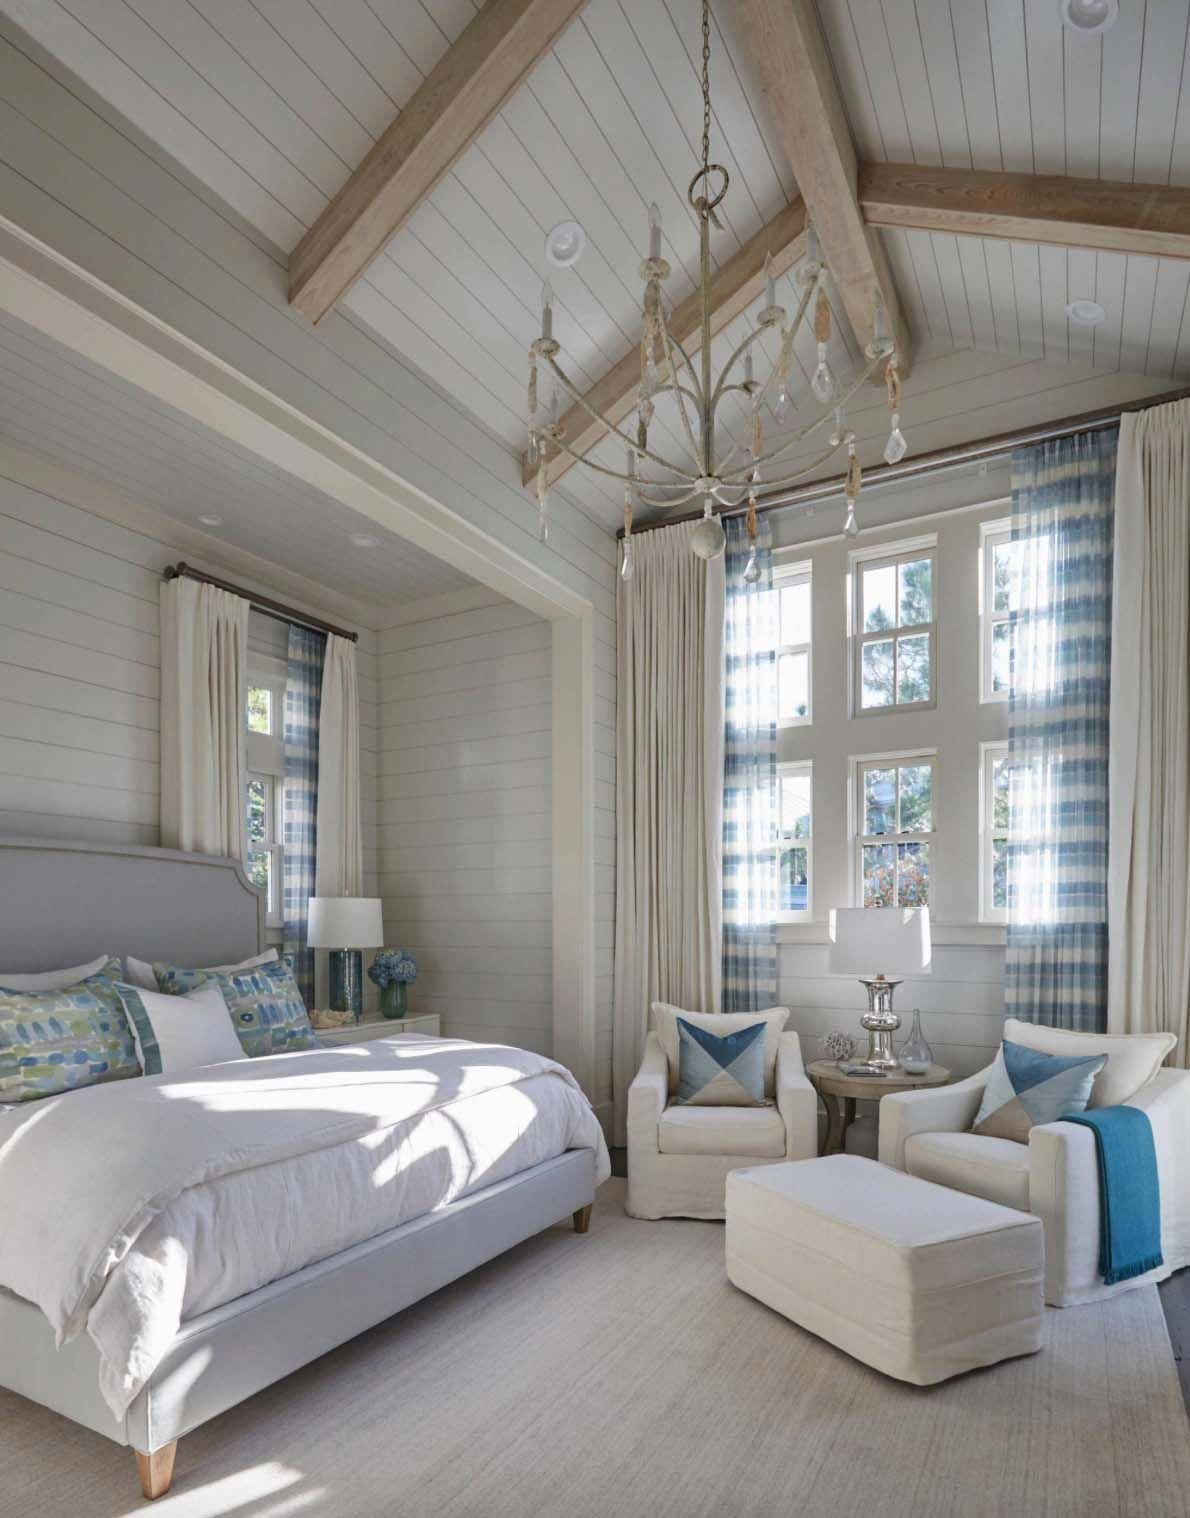 Beach house in WaterColor offers dreamy sea-inspired accents ...